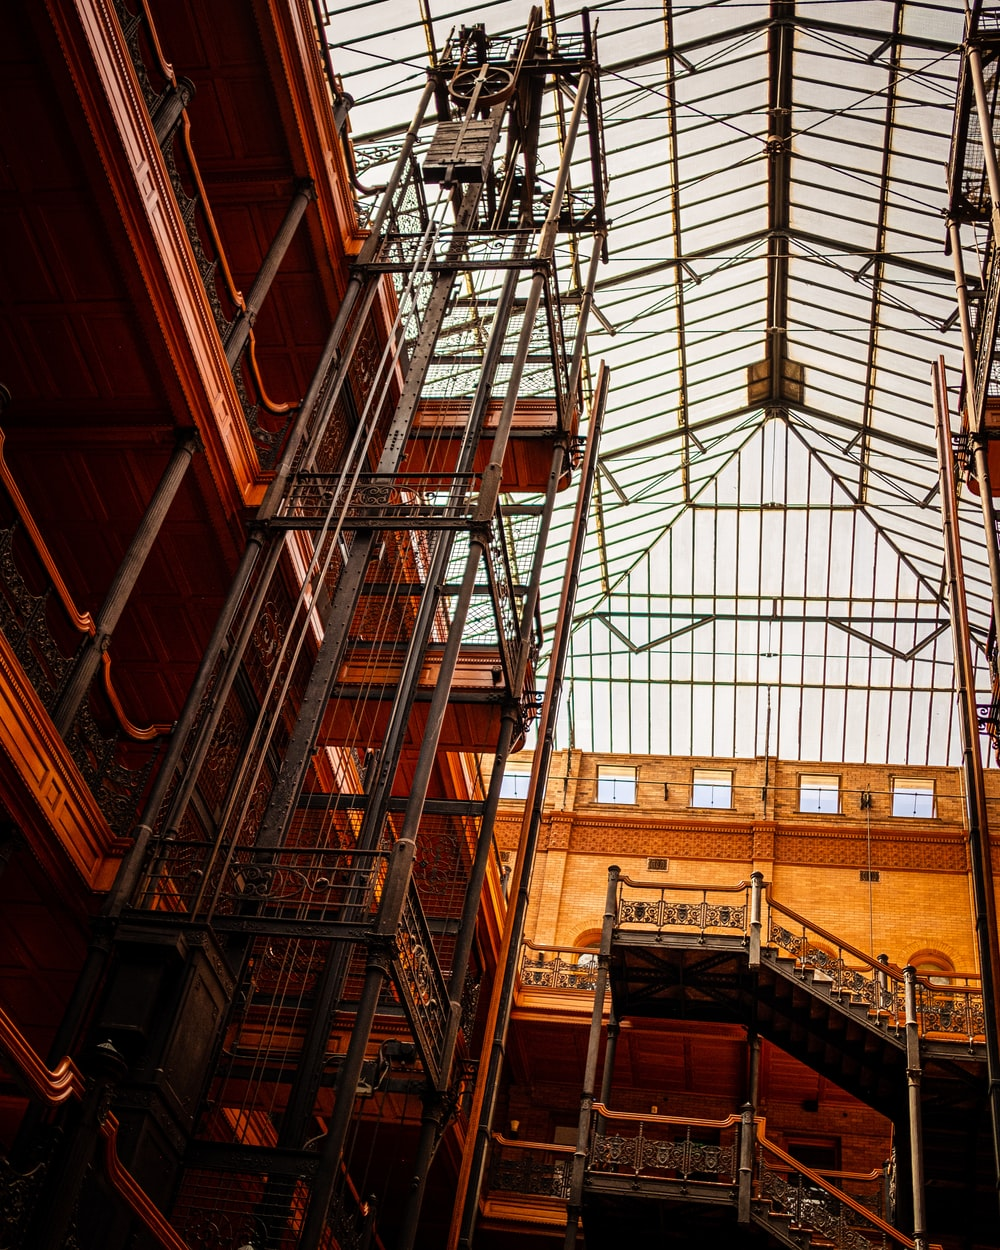 low angle photography of brown building interior with scaffolding